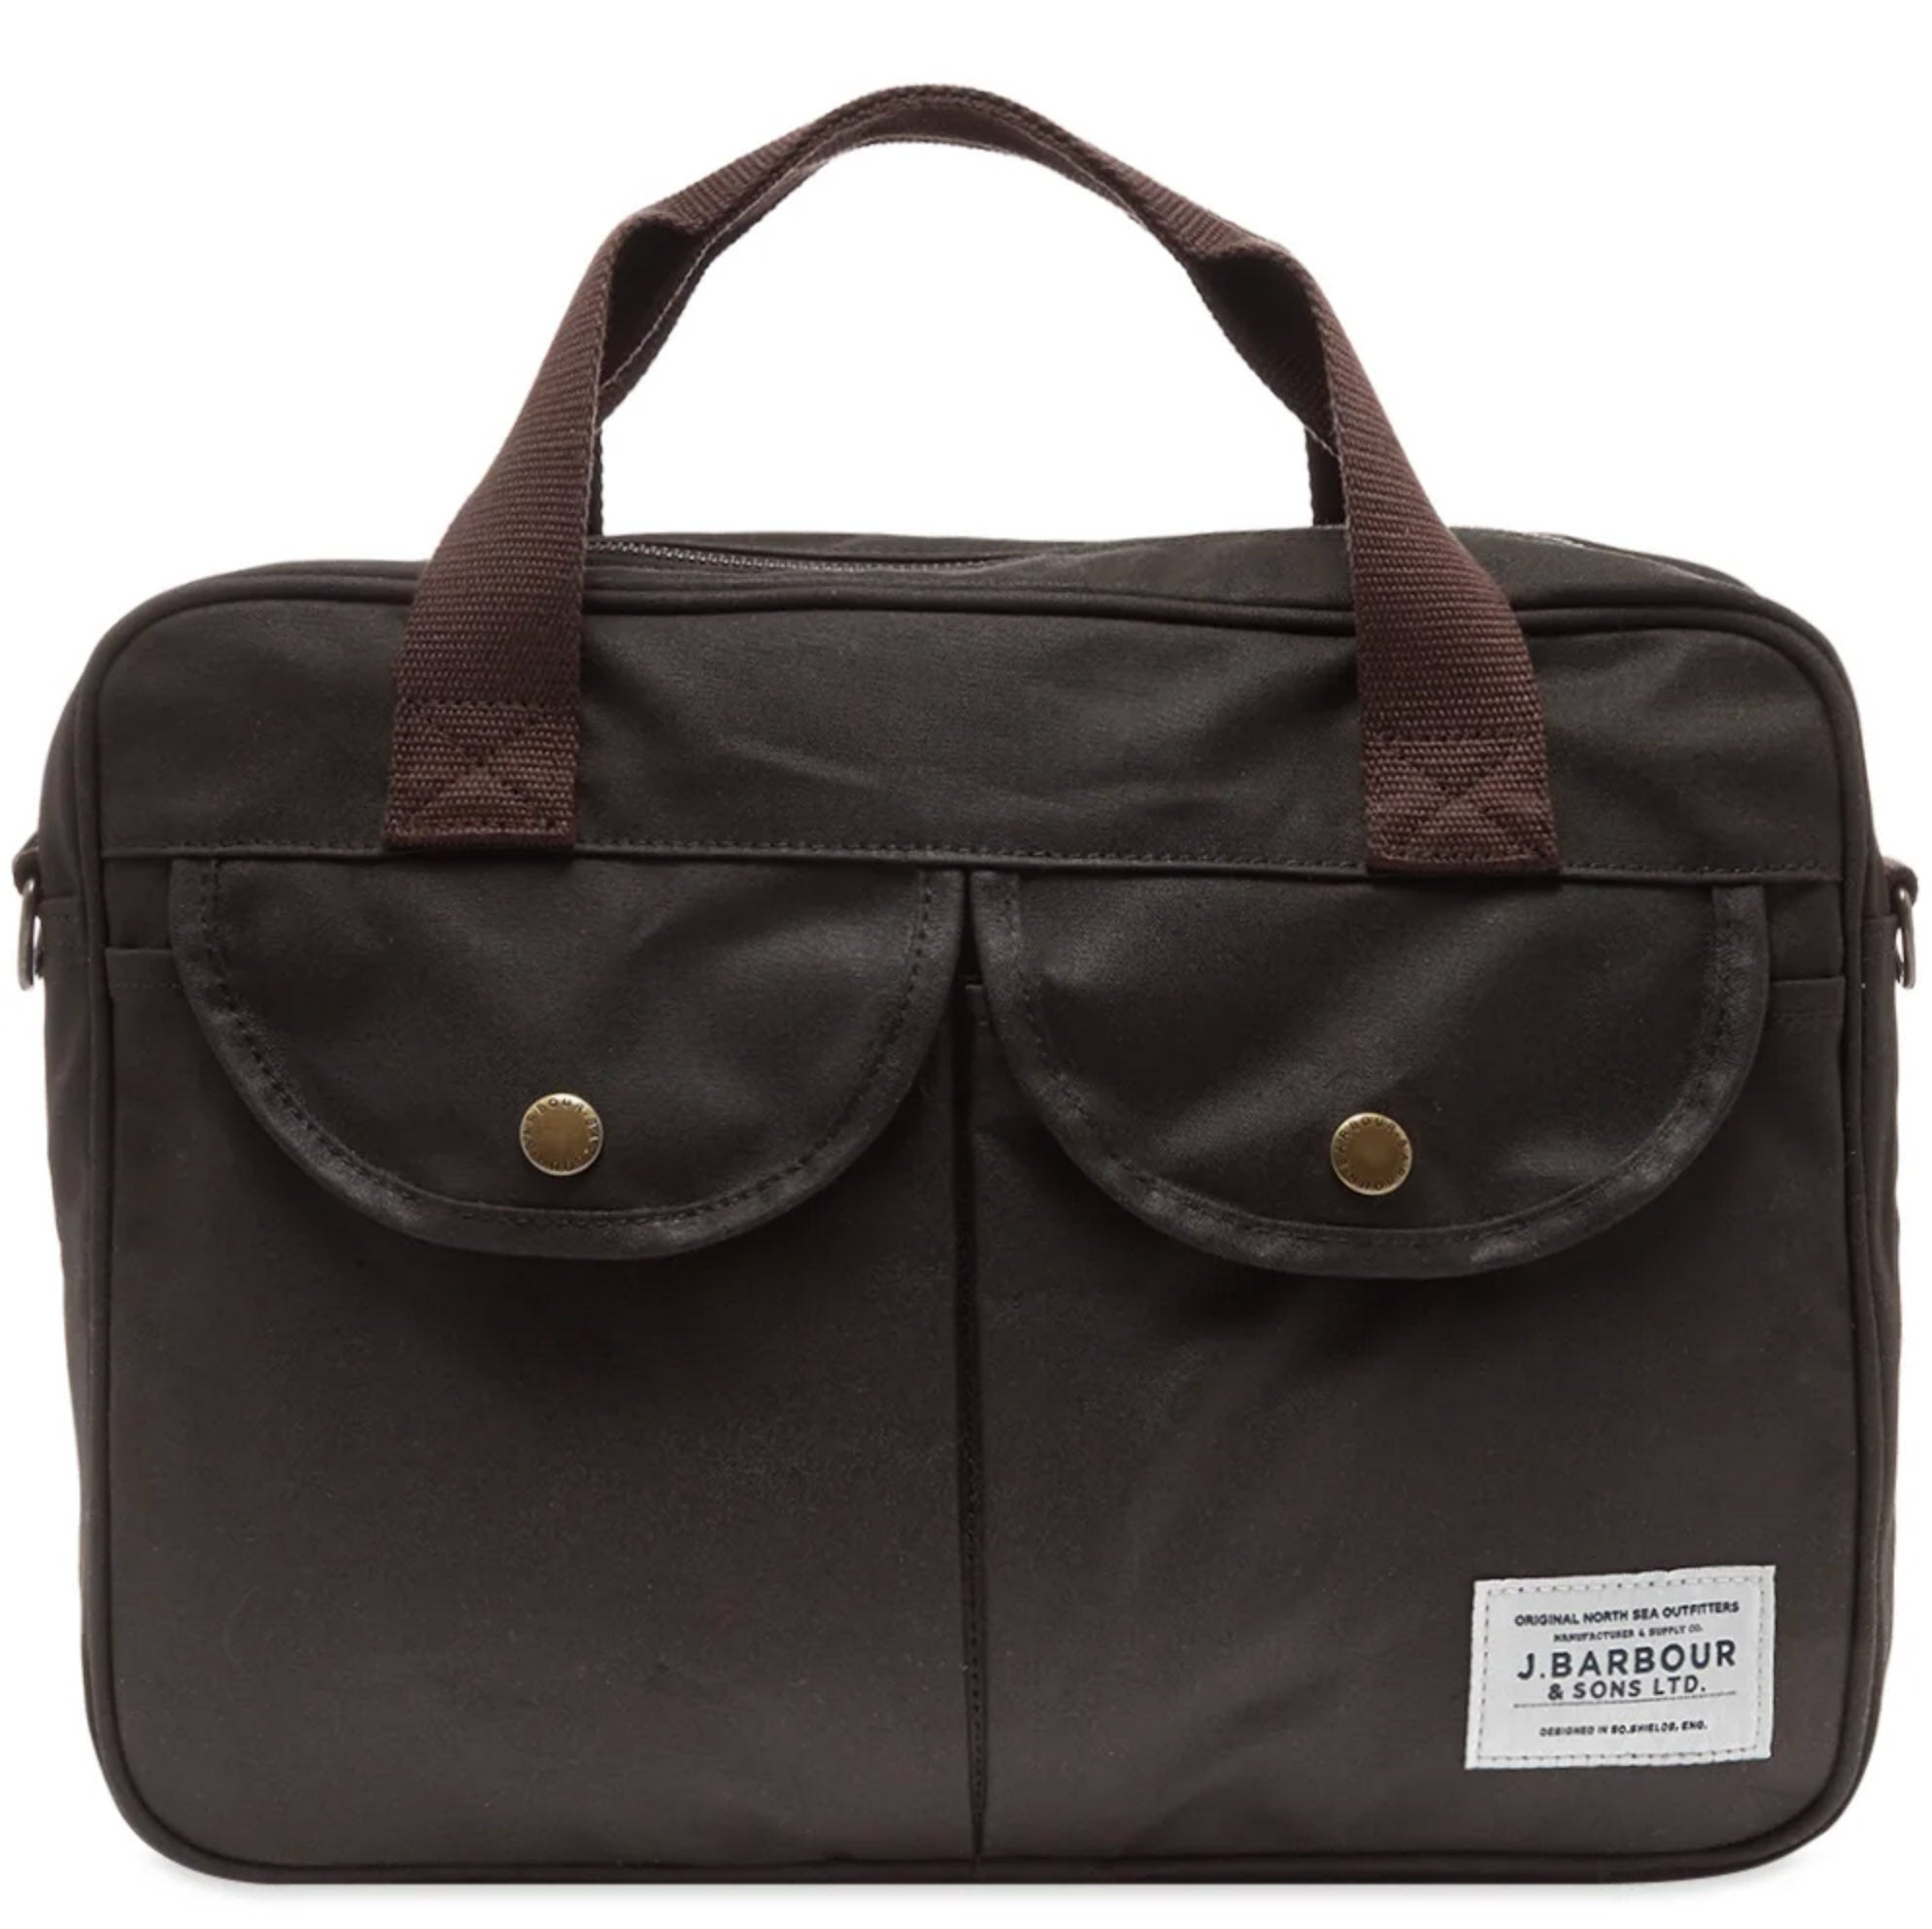 Wax Longthorpe Laptop Bag (Olive)